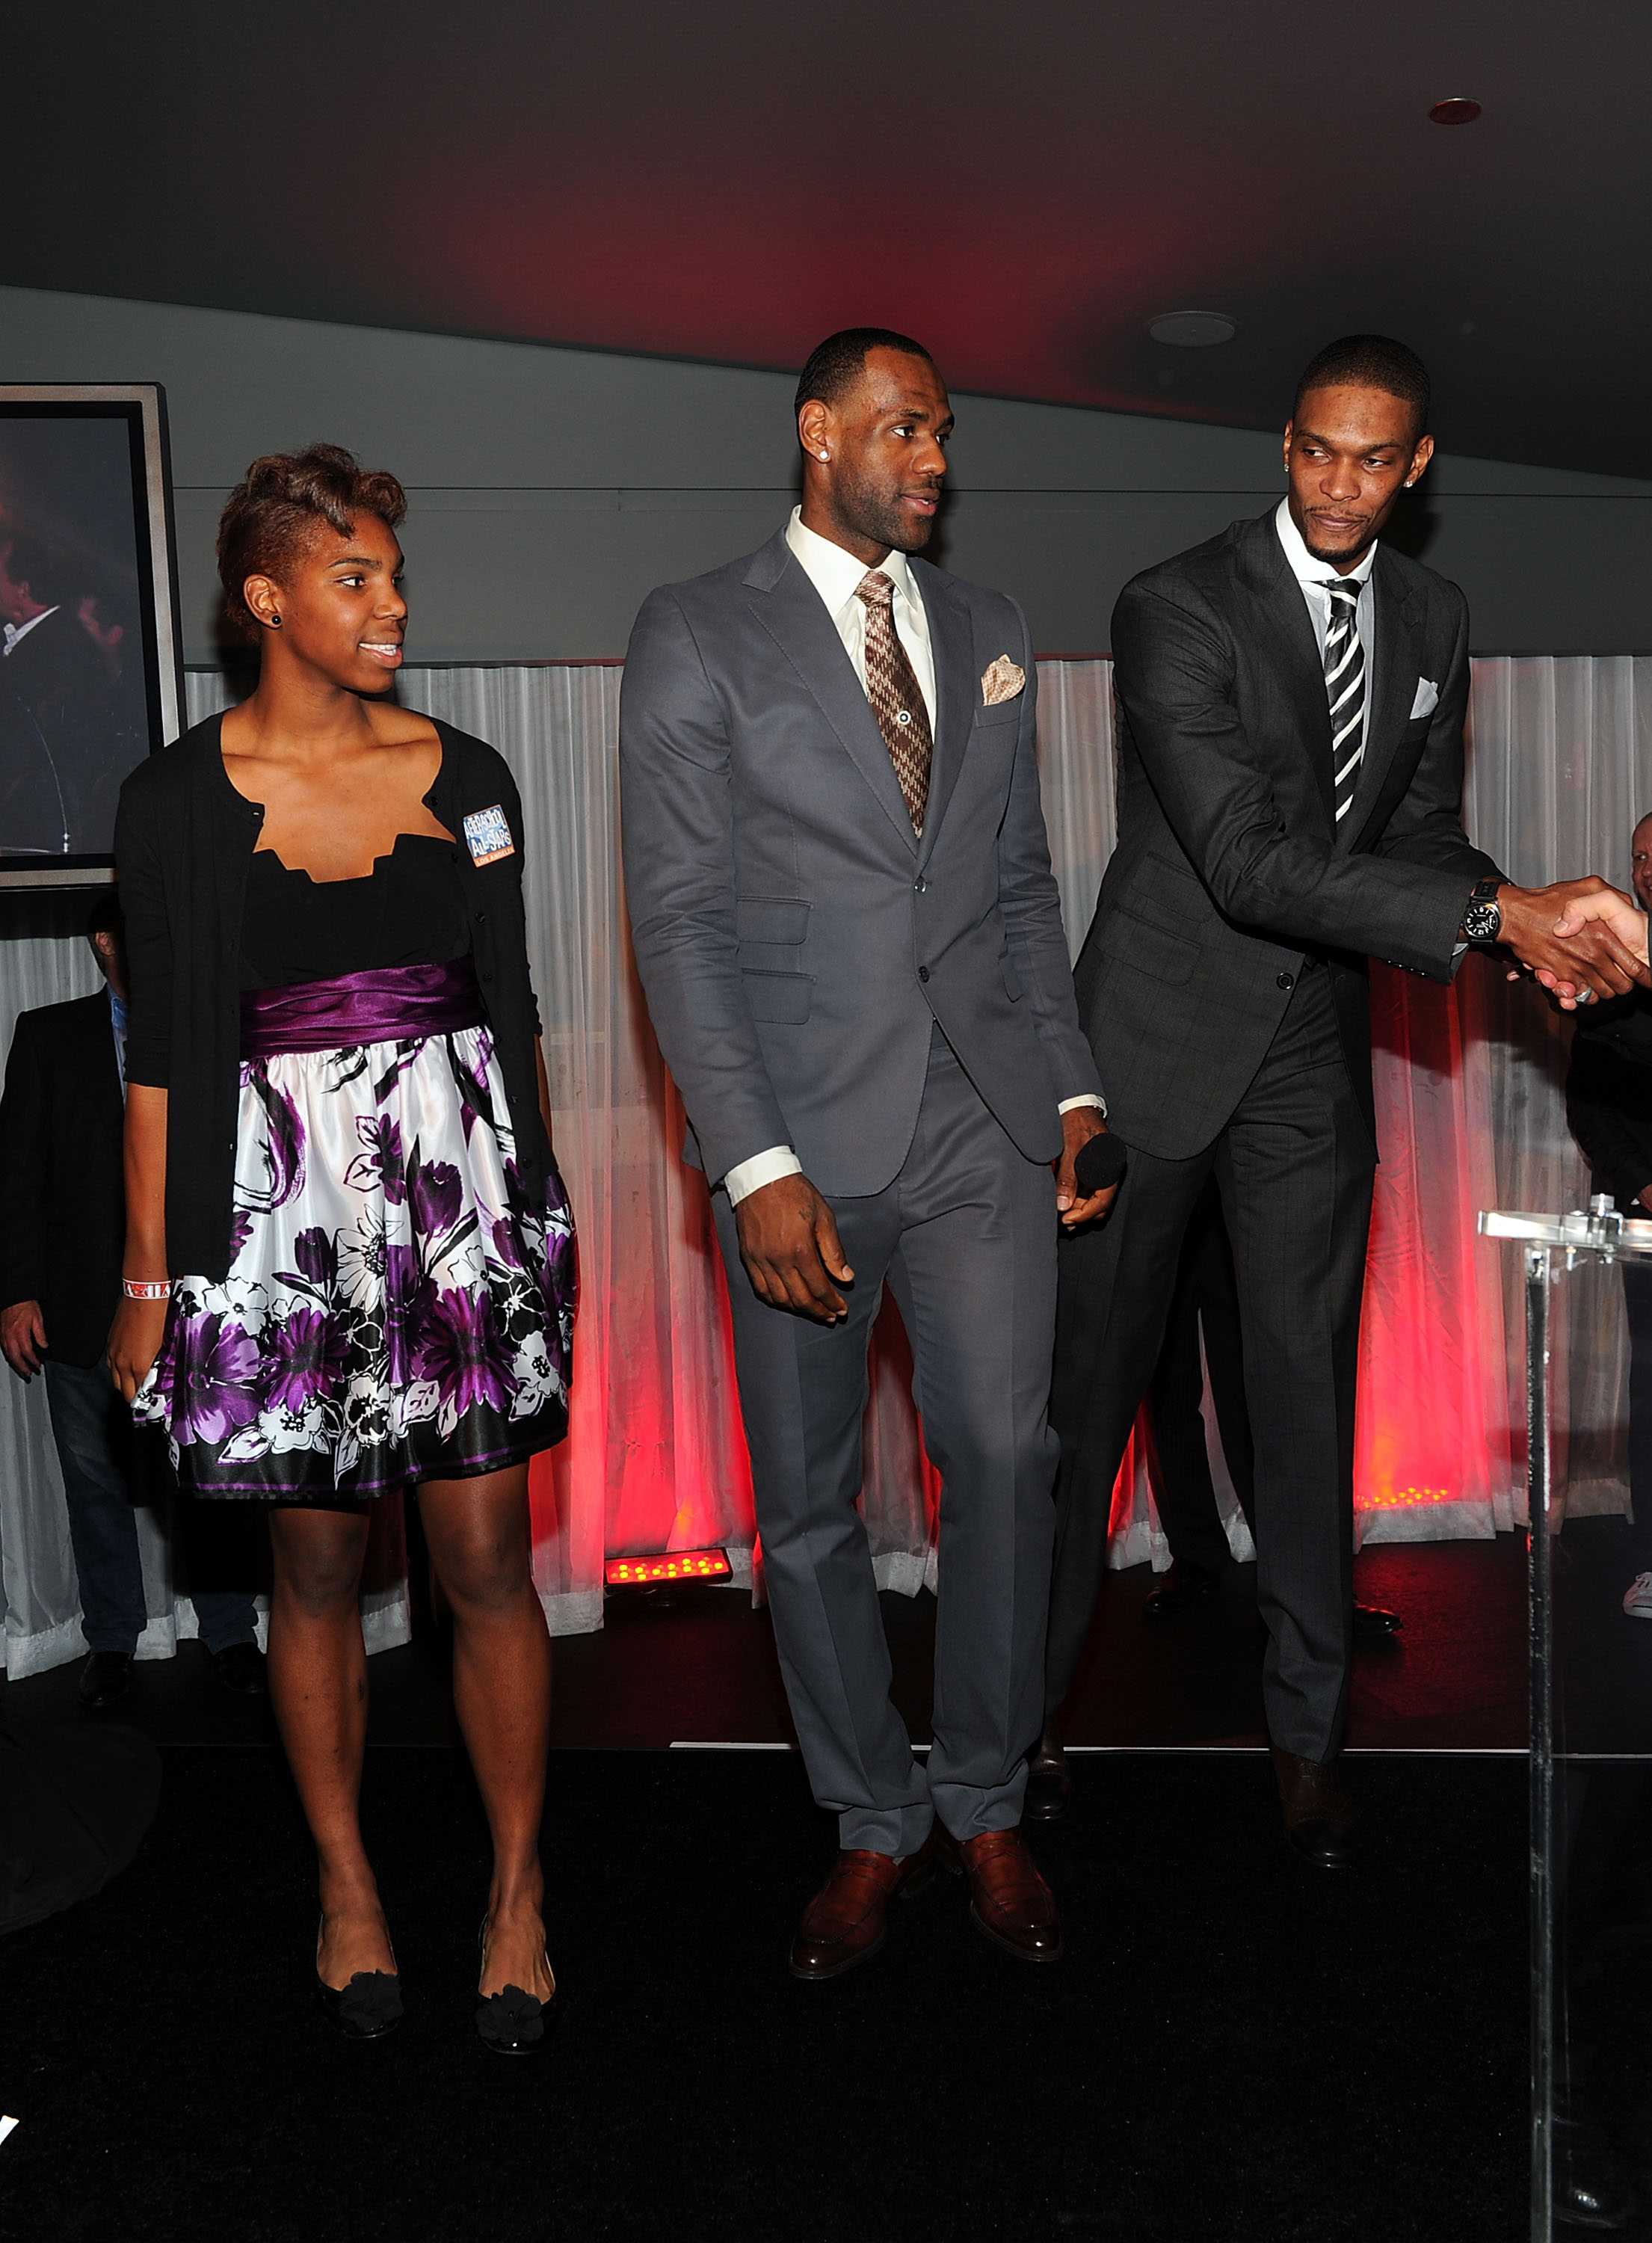 LOS ANGELES, CA - FEBRUARY 18:  Reshanda Gray, LeBron James of the Miami Heat and NBA player Chris Bosh of the Miami Heat attend After-School All-Stars (ASAS) Hoops Heroes Salute VIP after party at Katsuya, LA Live on February 18, 2011 in Los Angeles, California.  (Photo by Alberto E. Rodriguez/Getty Images for ASAS)